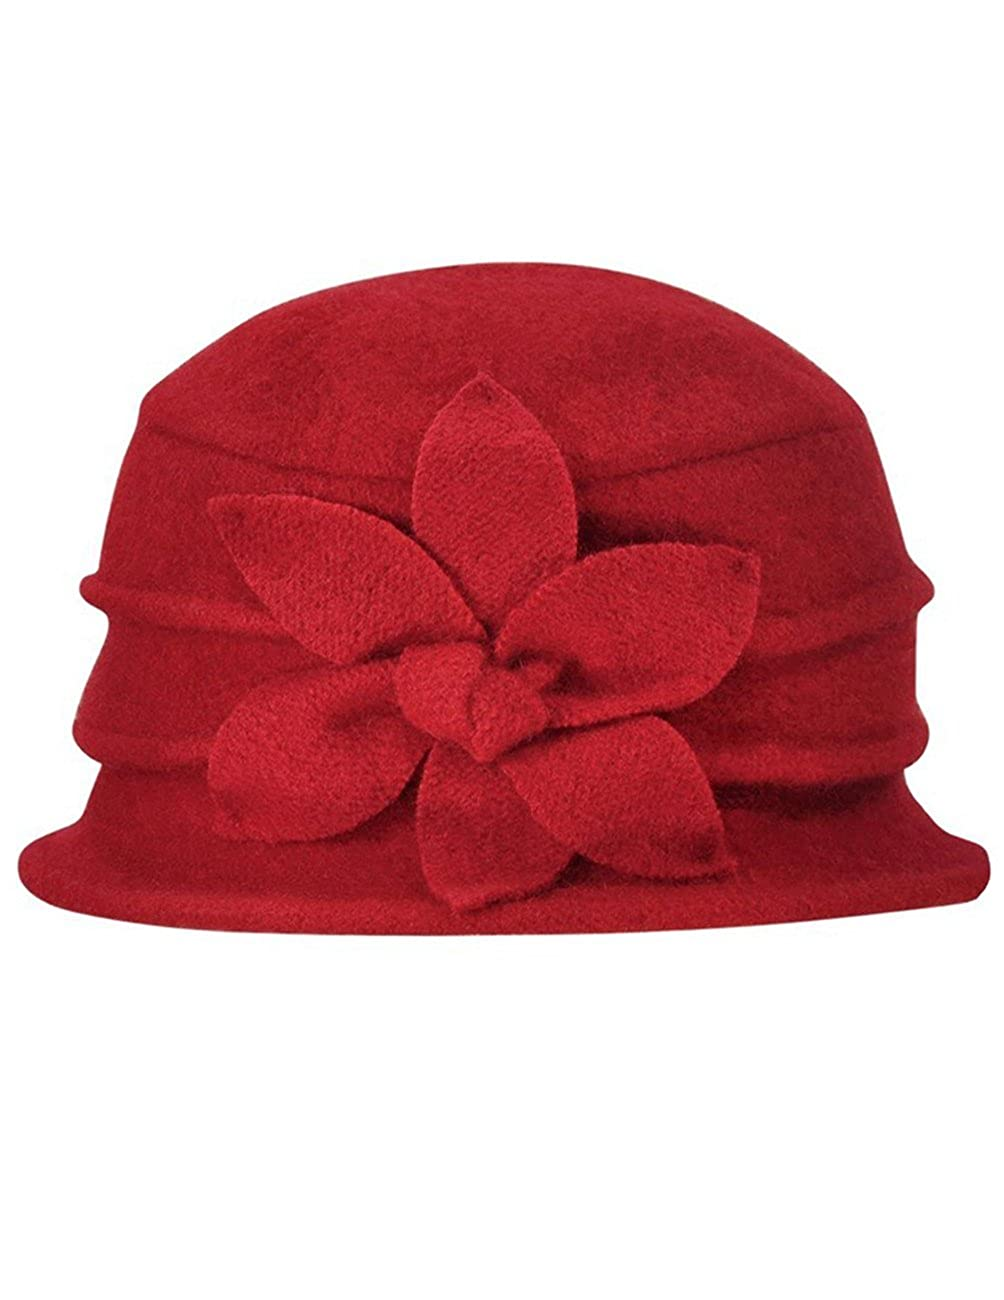 ab5c138e36d Dahlia Women s Daisy Flower Wool Cloche Bucket Hat HT0014WLW-BK larger image